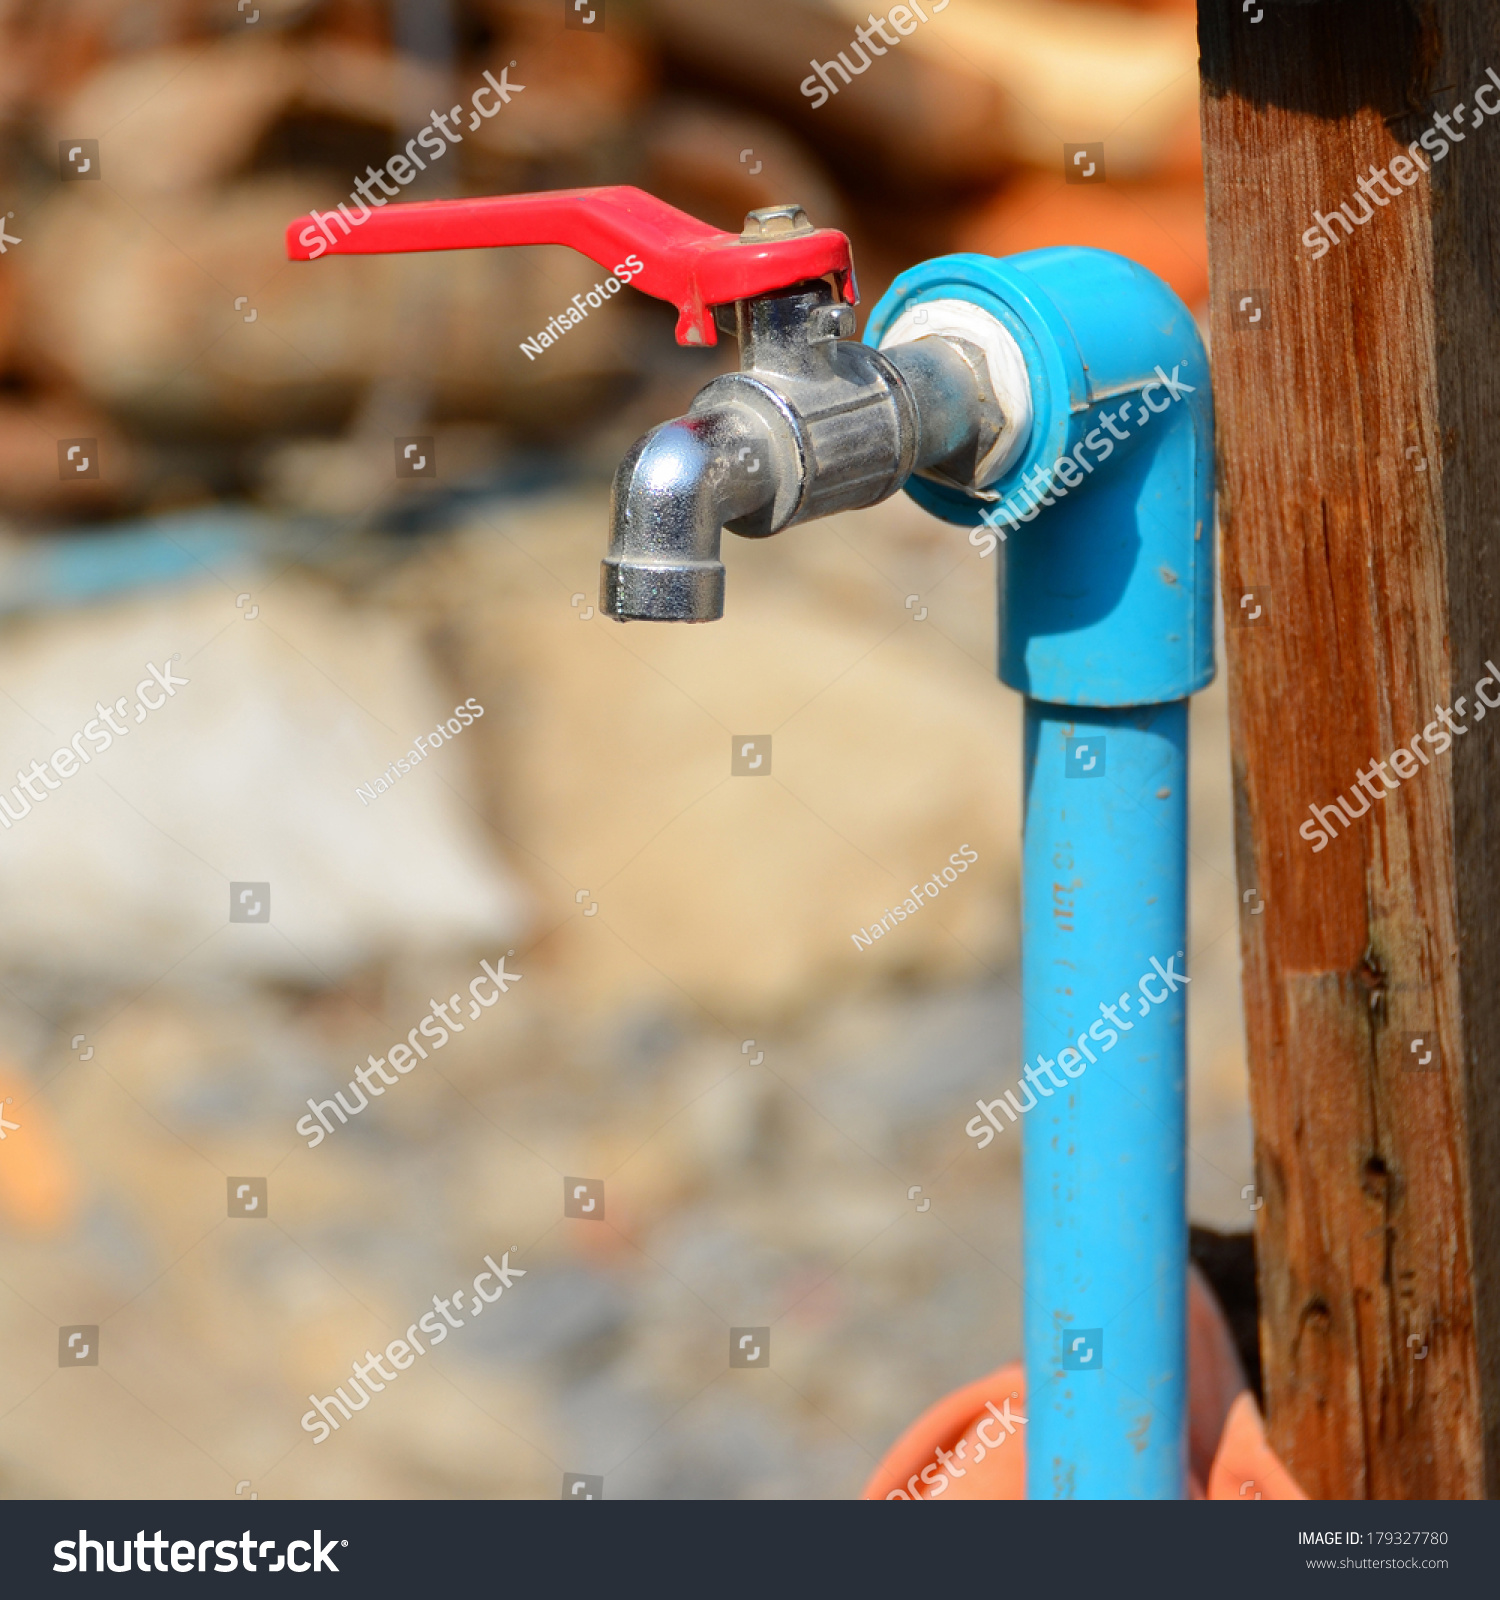 Faucets PVC Pipe Installation Use Stock Photo (Edit Now)- Shutterstock